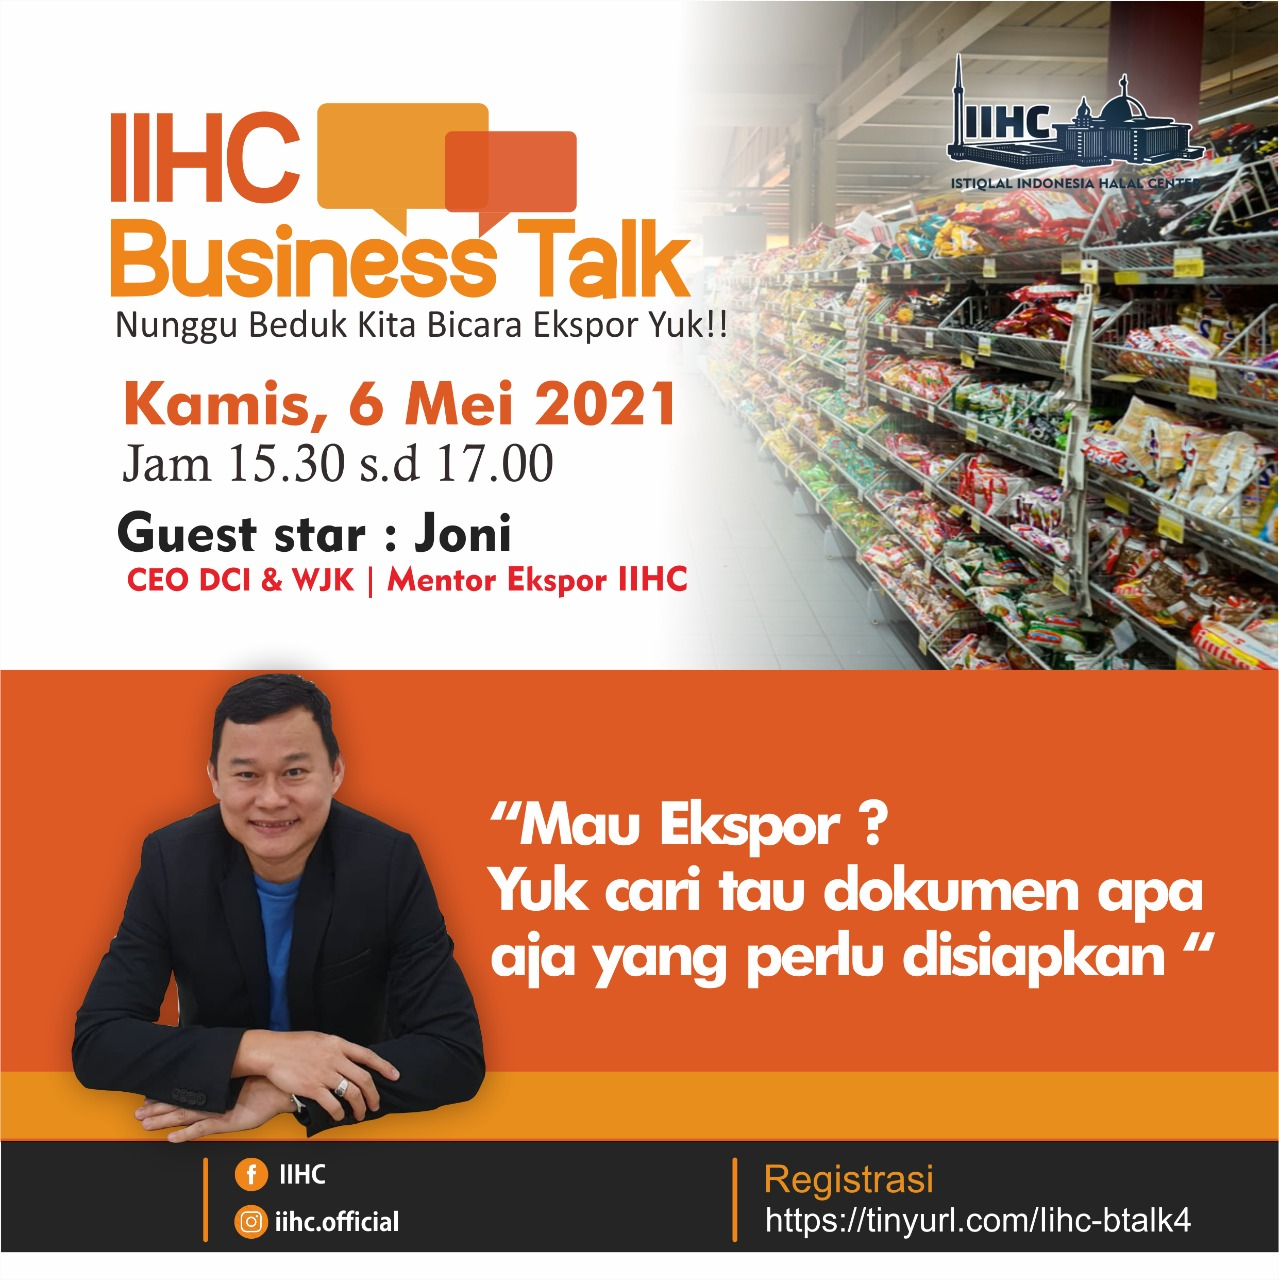 IIHC Business Talk